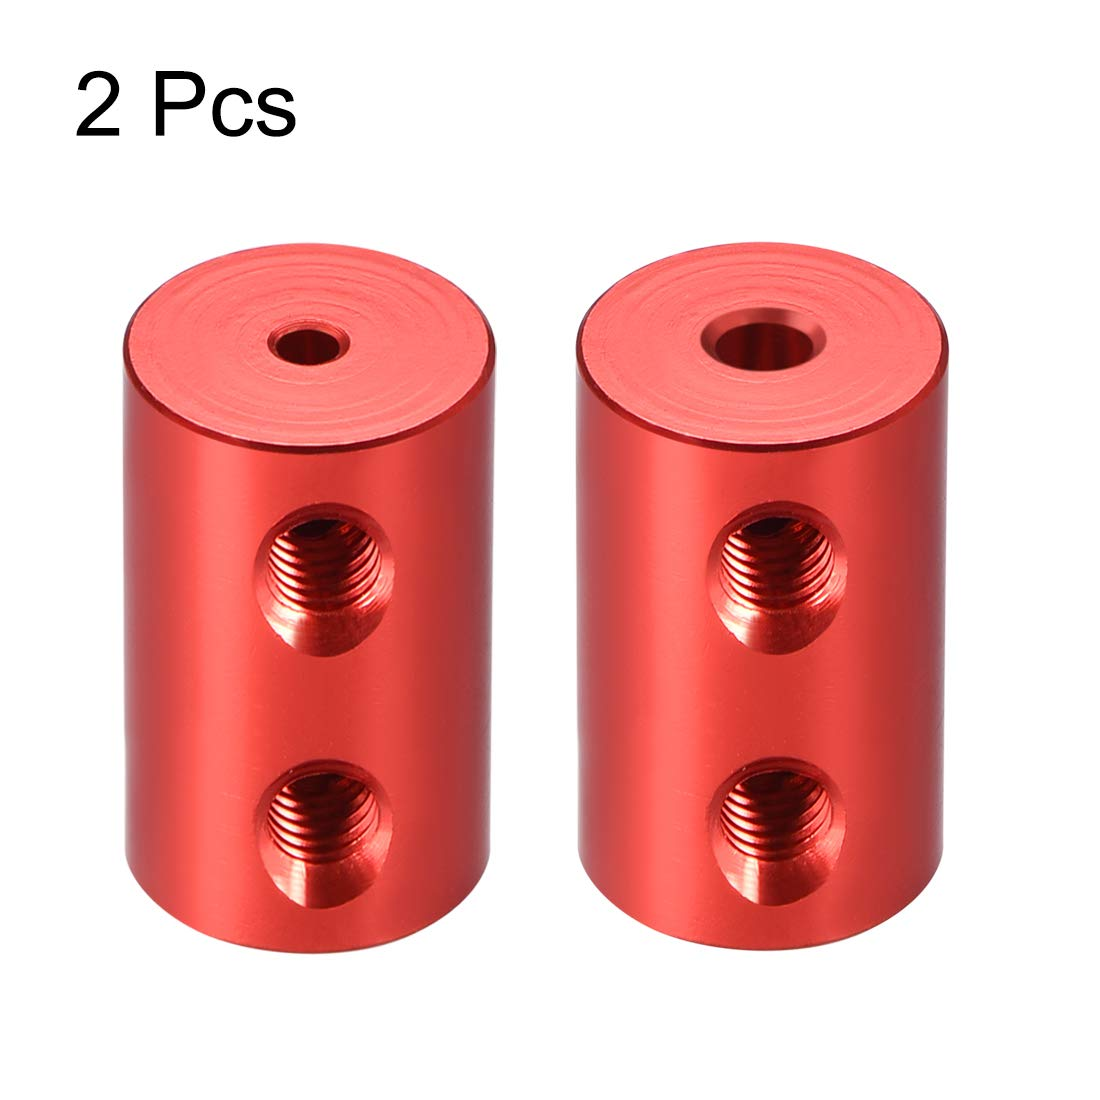 uxcell Shaft Coupling 2mm to 3mm Bore L20xD12 Robot Motor Wheel Rigid Coupler Connector Red 2 Pcs